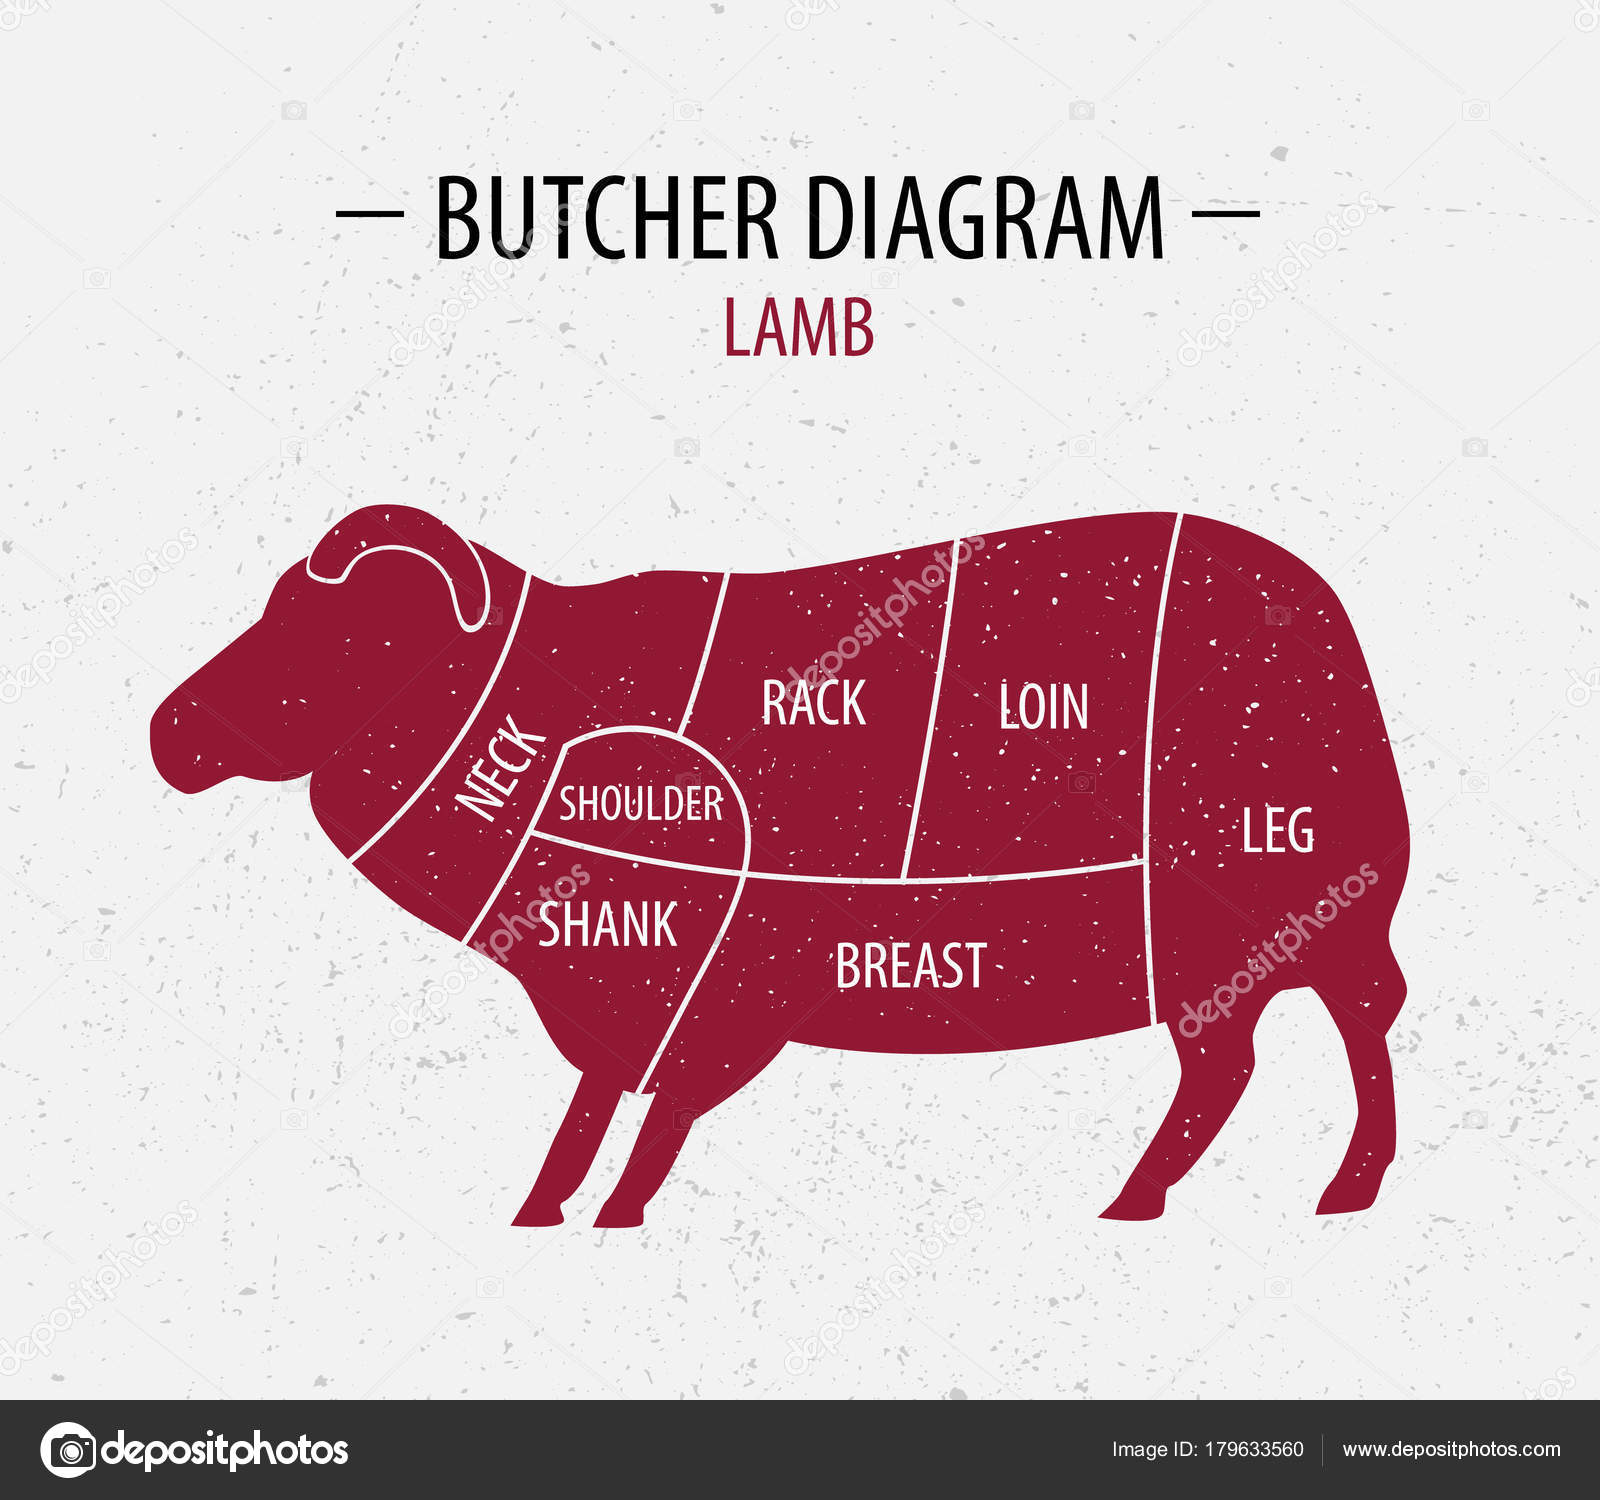 Red Butcher Diagram Not Lossing Wiring Pig Cut Of Lamb Poster For Groceries Meat Stores Rh Depositphotos Com Turkey